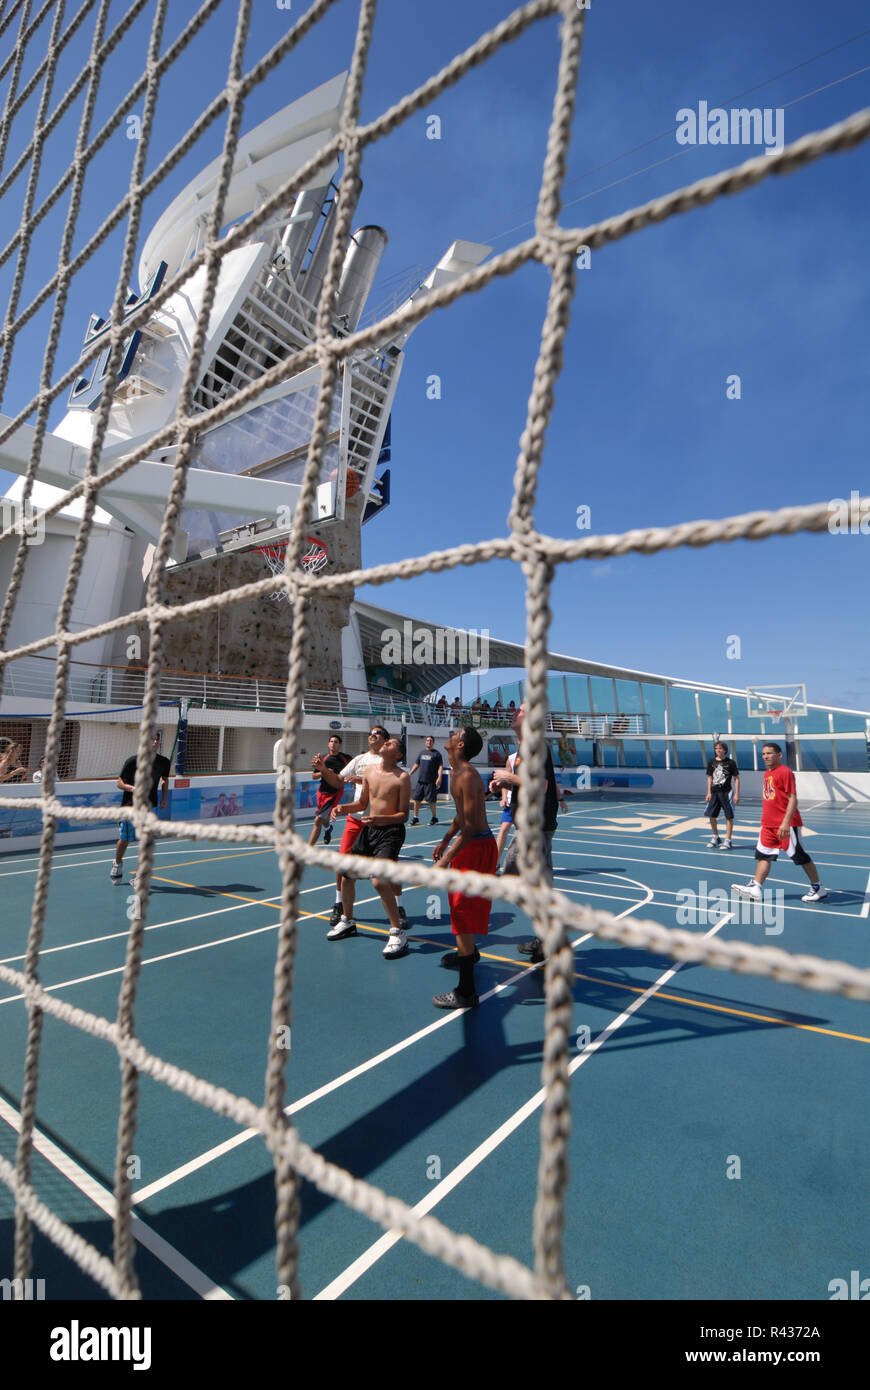 Young men play basketball on the sports deck of Adventure of the Seas cruise ship. - Stock Image